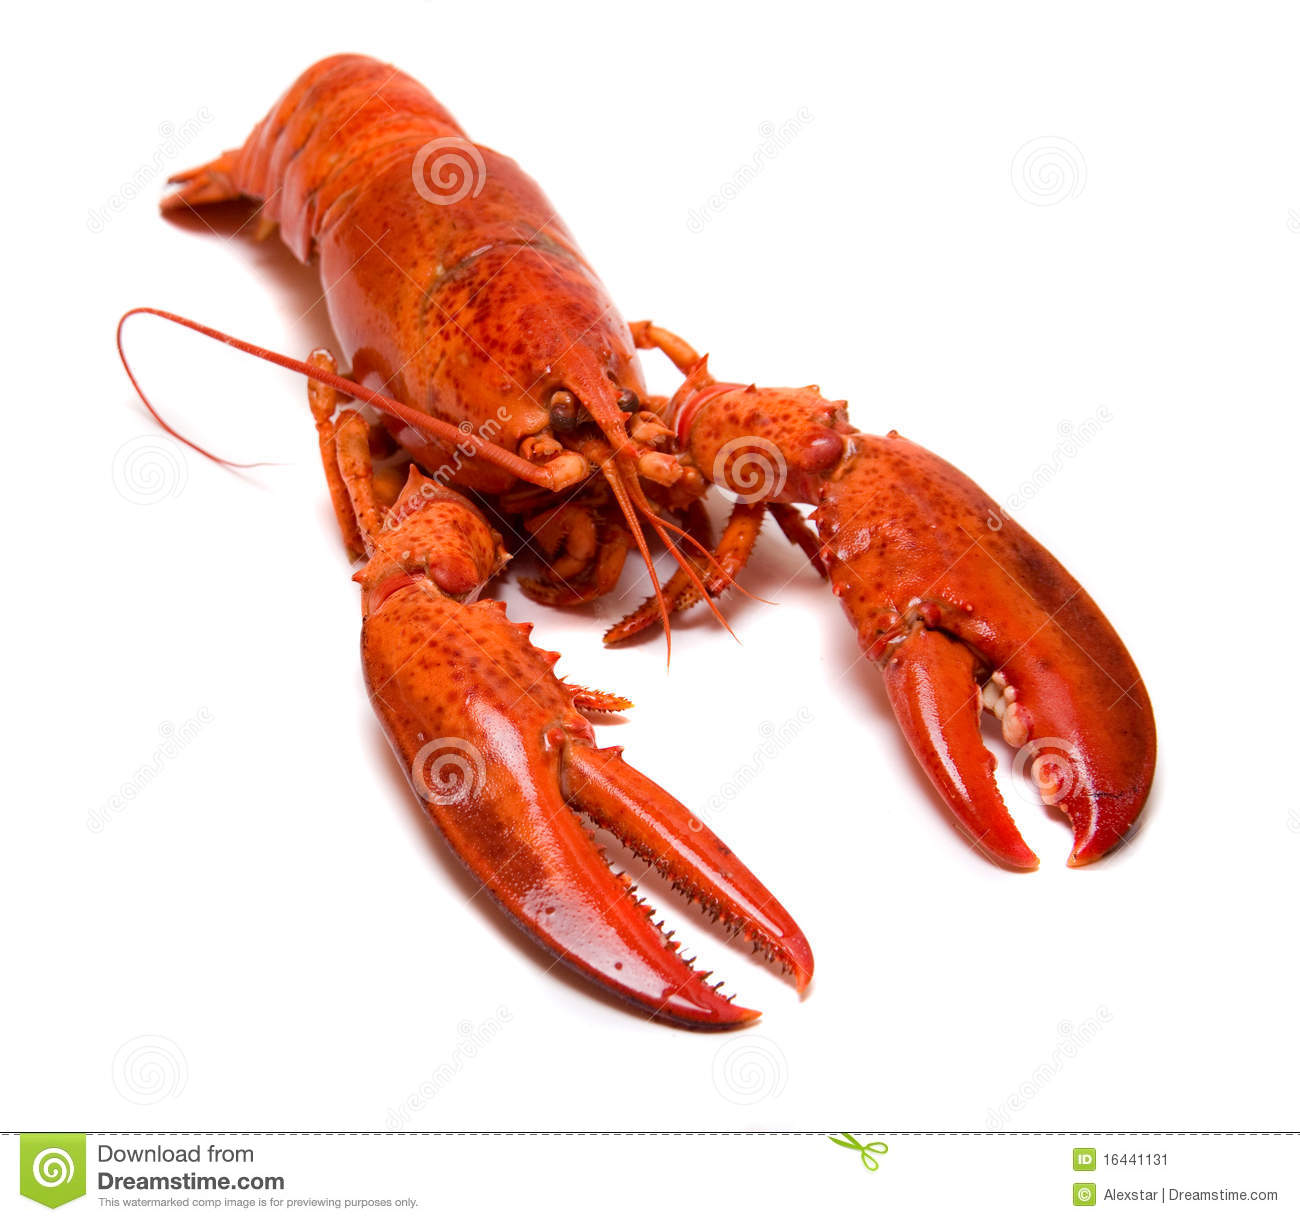 Boiled Lobster Stock Image - Image: 16441131